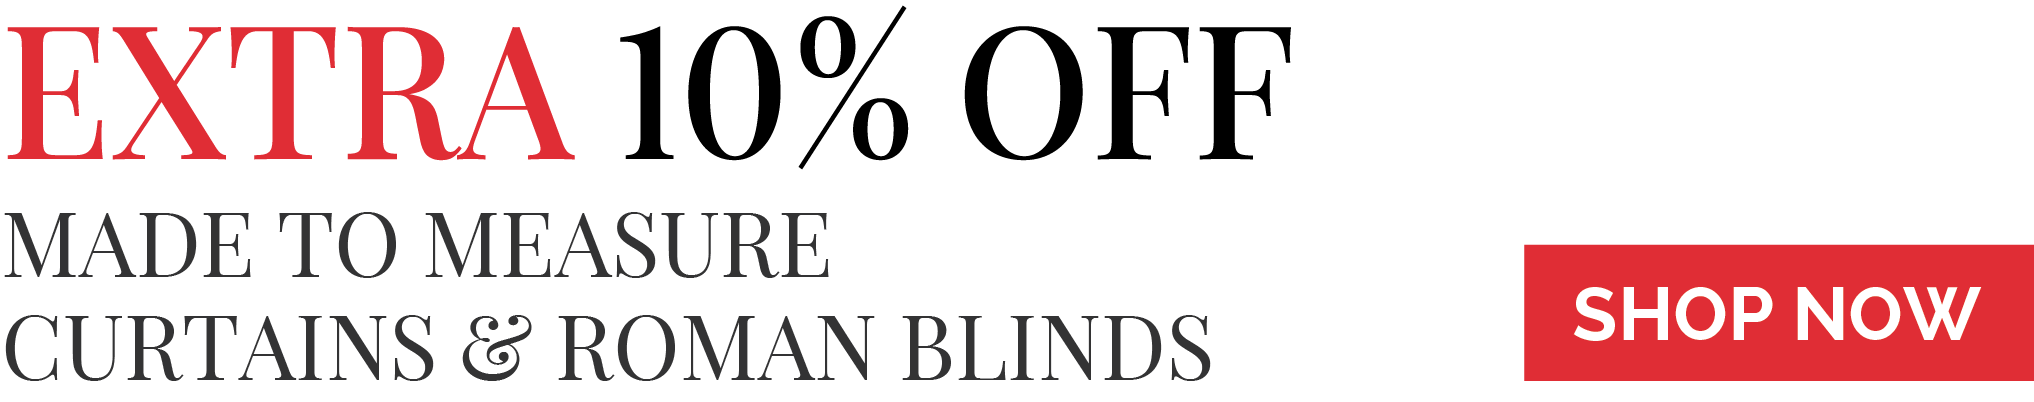 Extra 10% OFF made to measure